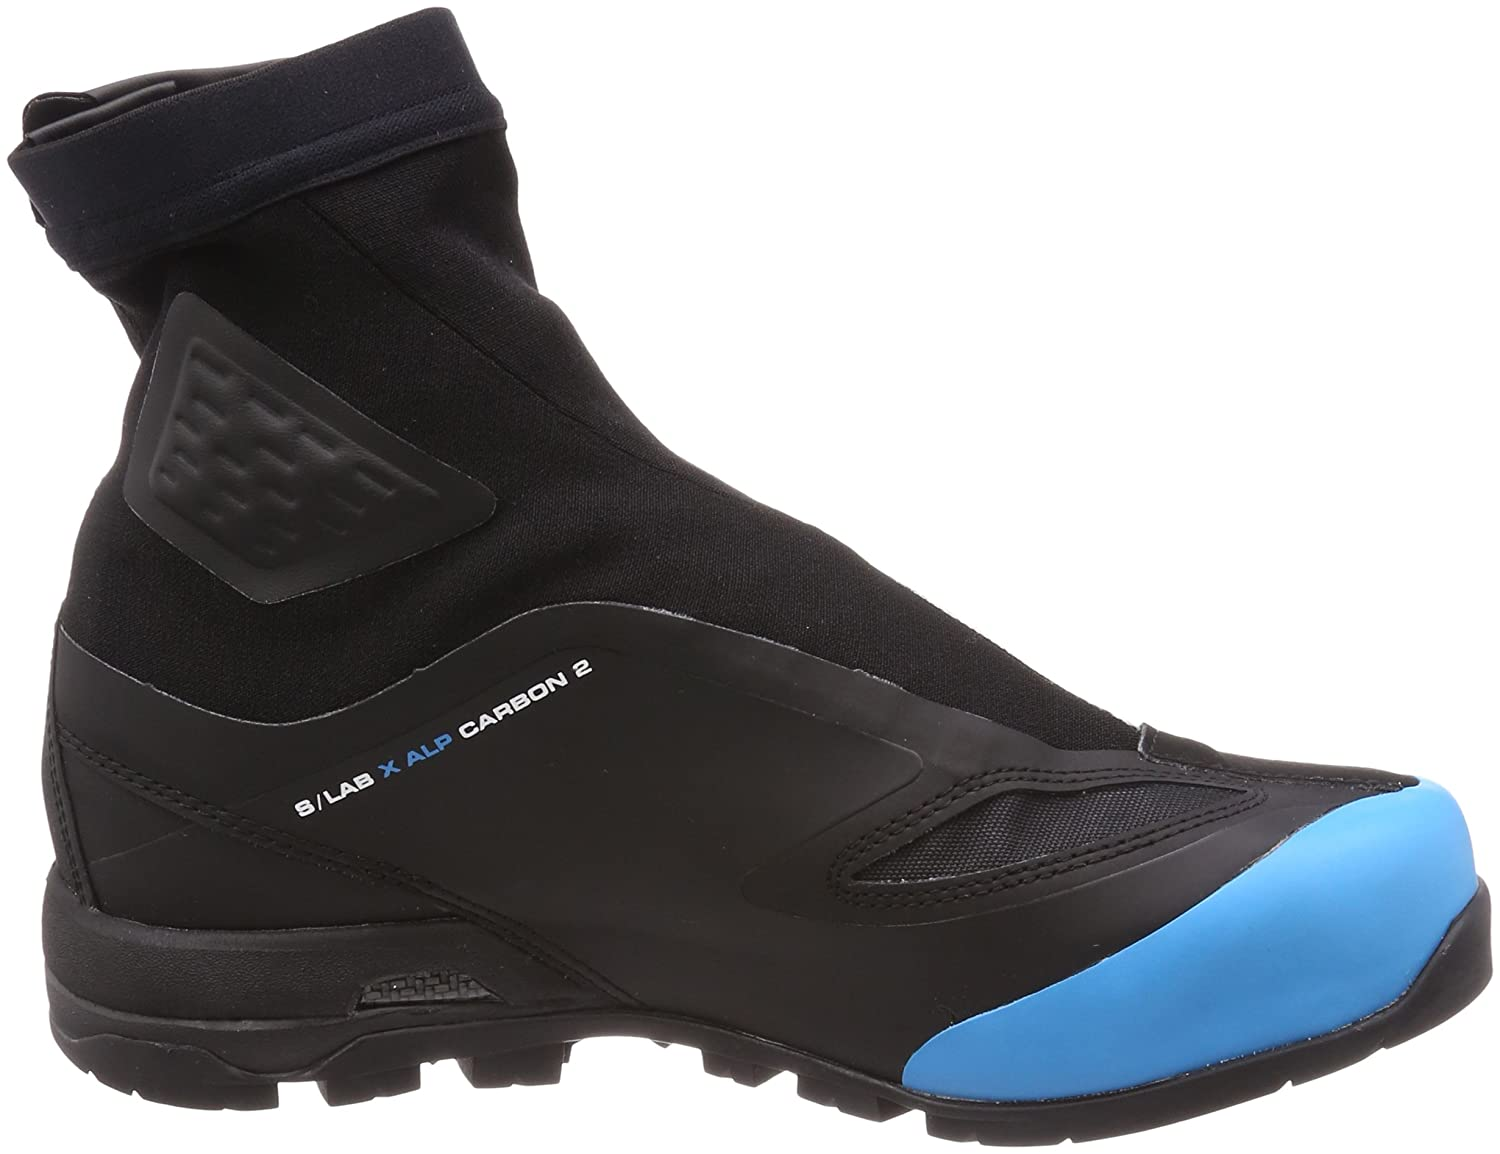 Slab Adulte De Salomon X Mixte Alp Trail Carbon 2 GtxChaussures uTKJclF13